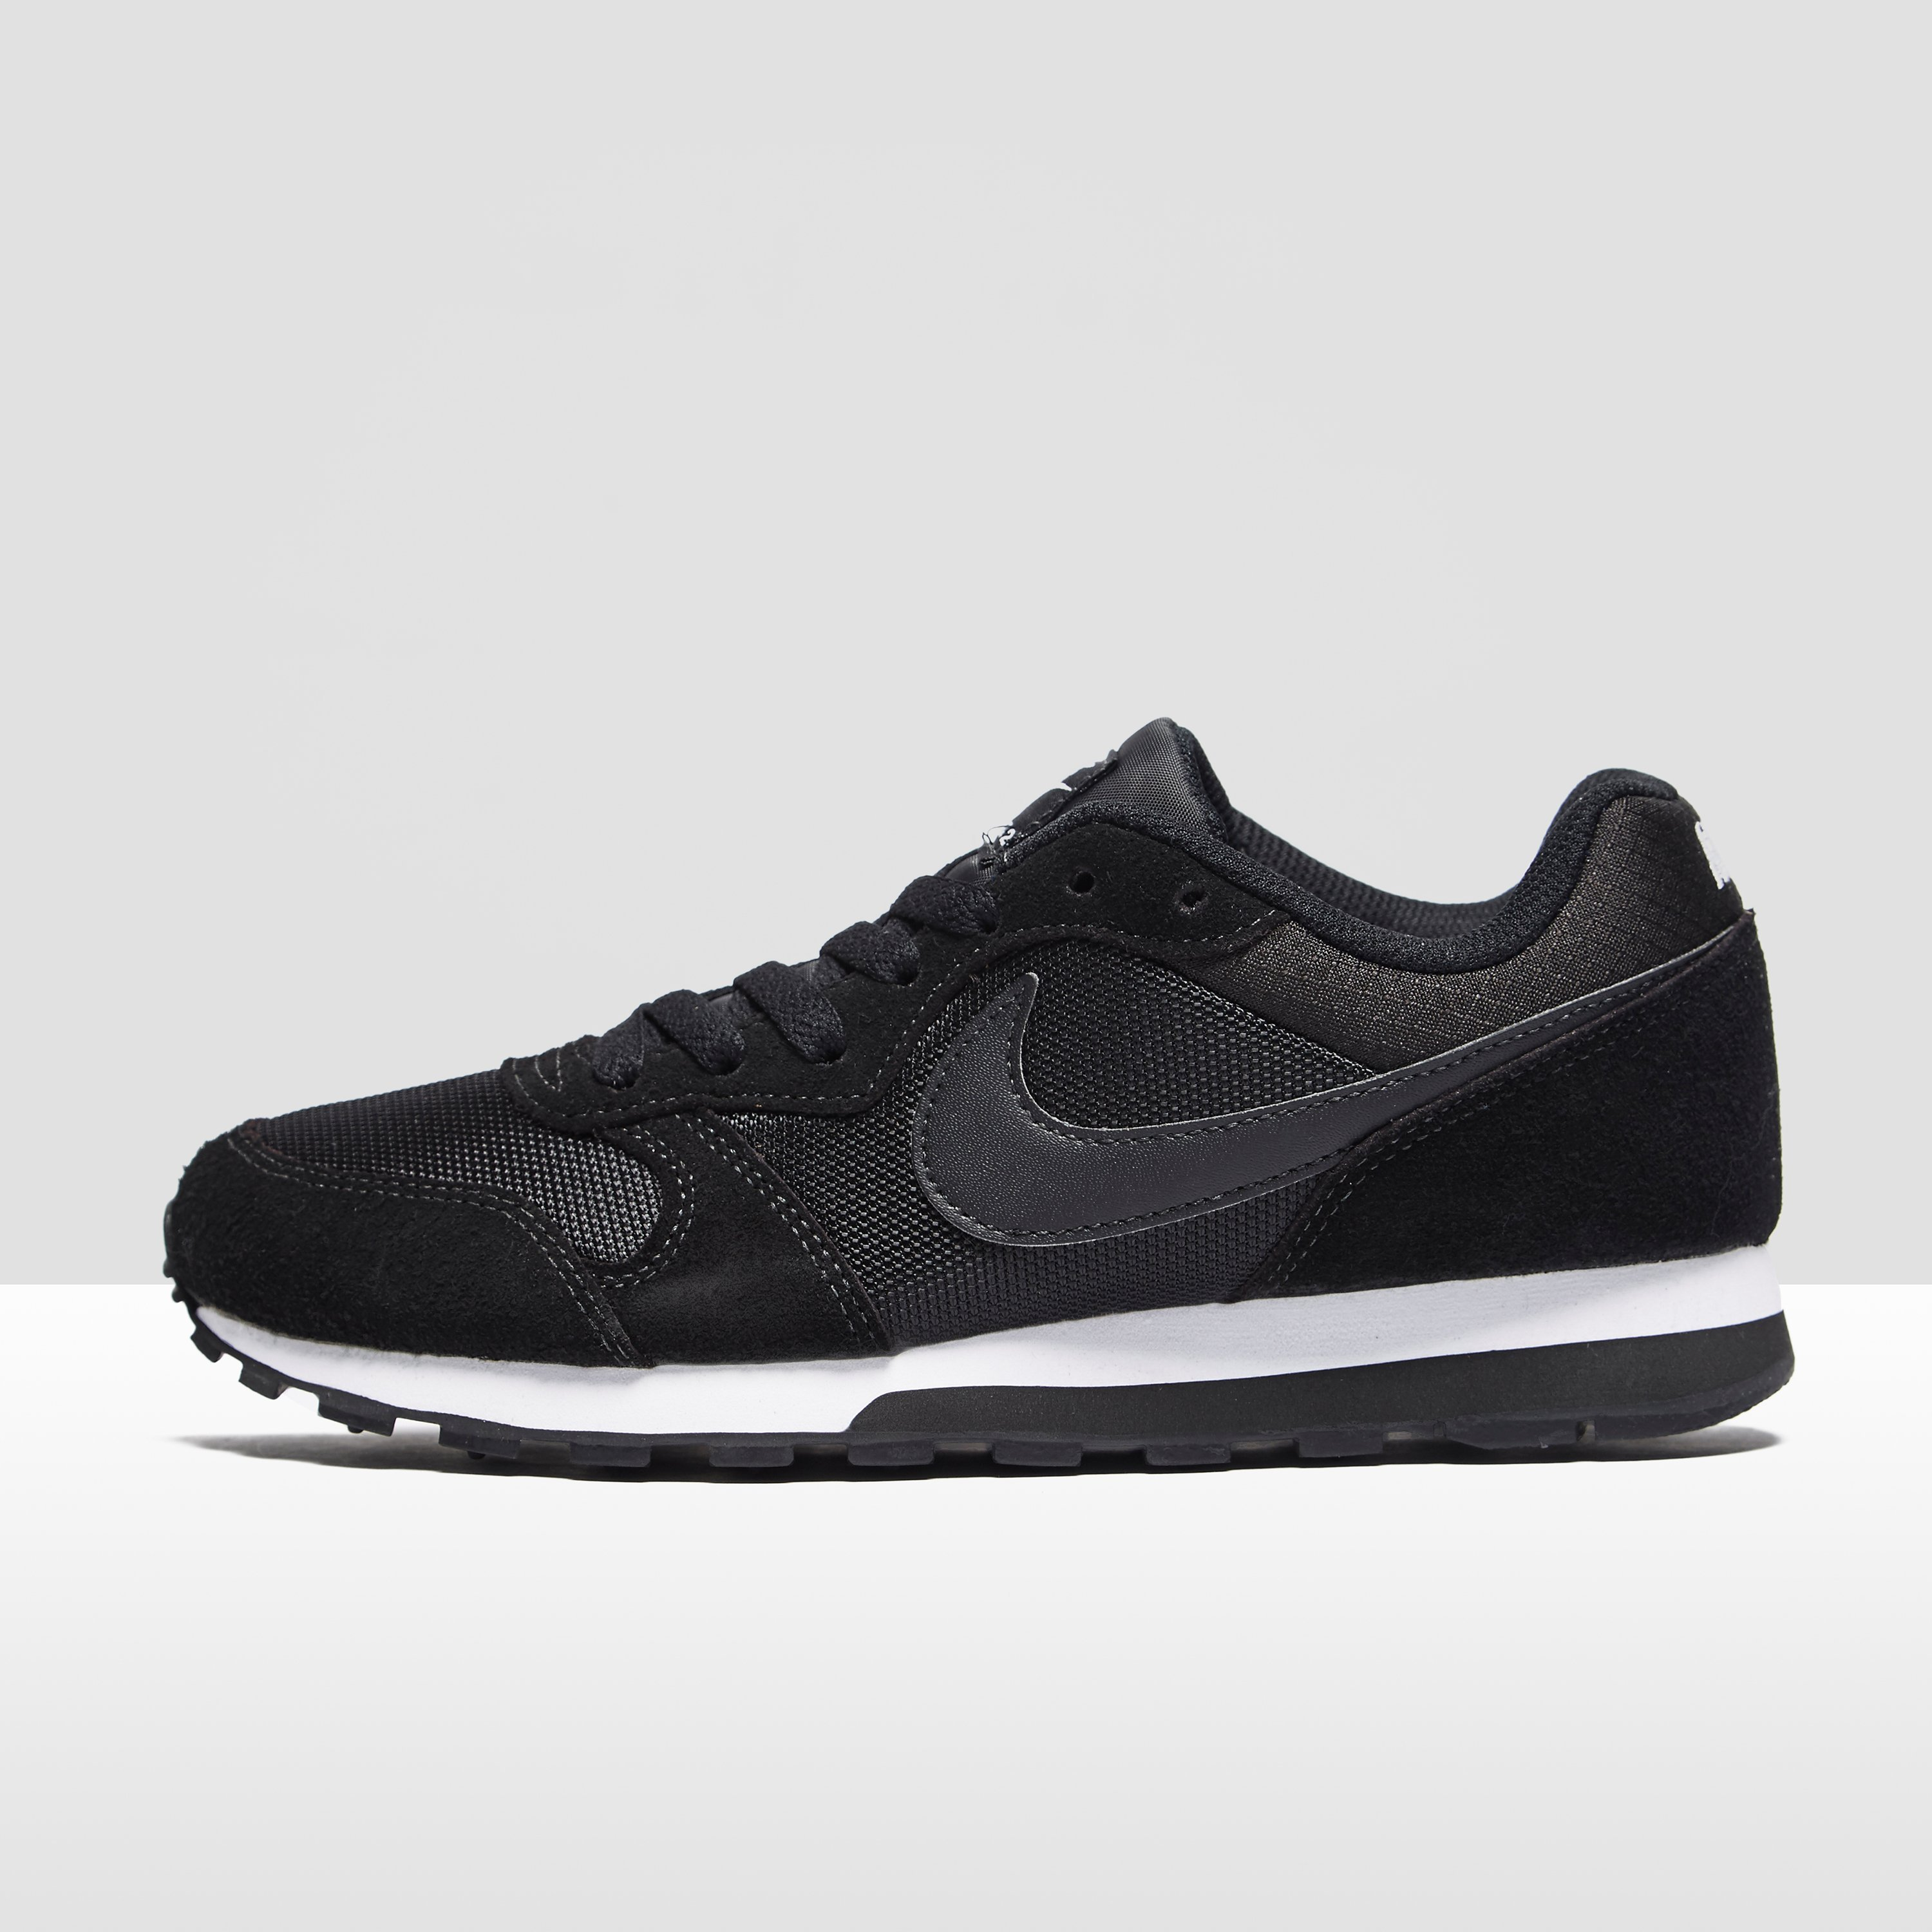 Psv Eindhoven Noir Chaussures Nike Runner Md Pour Hommes FcGgEWi2